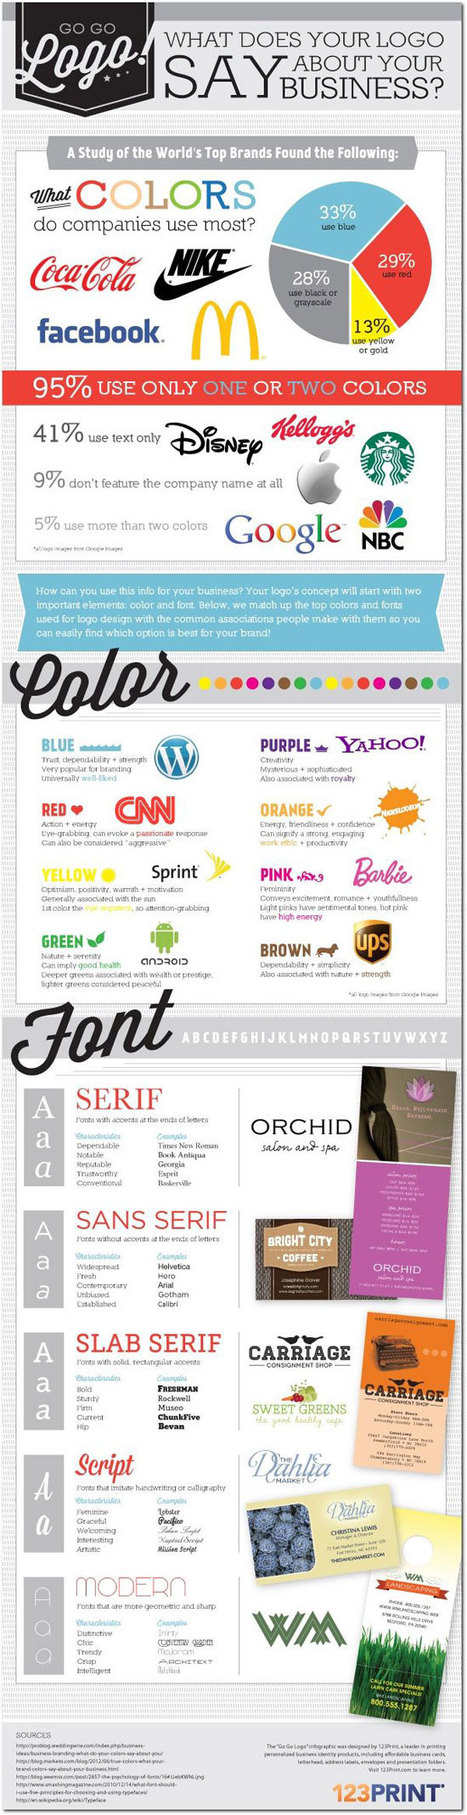 A Guide when Designing The Perfect Company Logo #Infographic | MarketingHits | Scoop.it